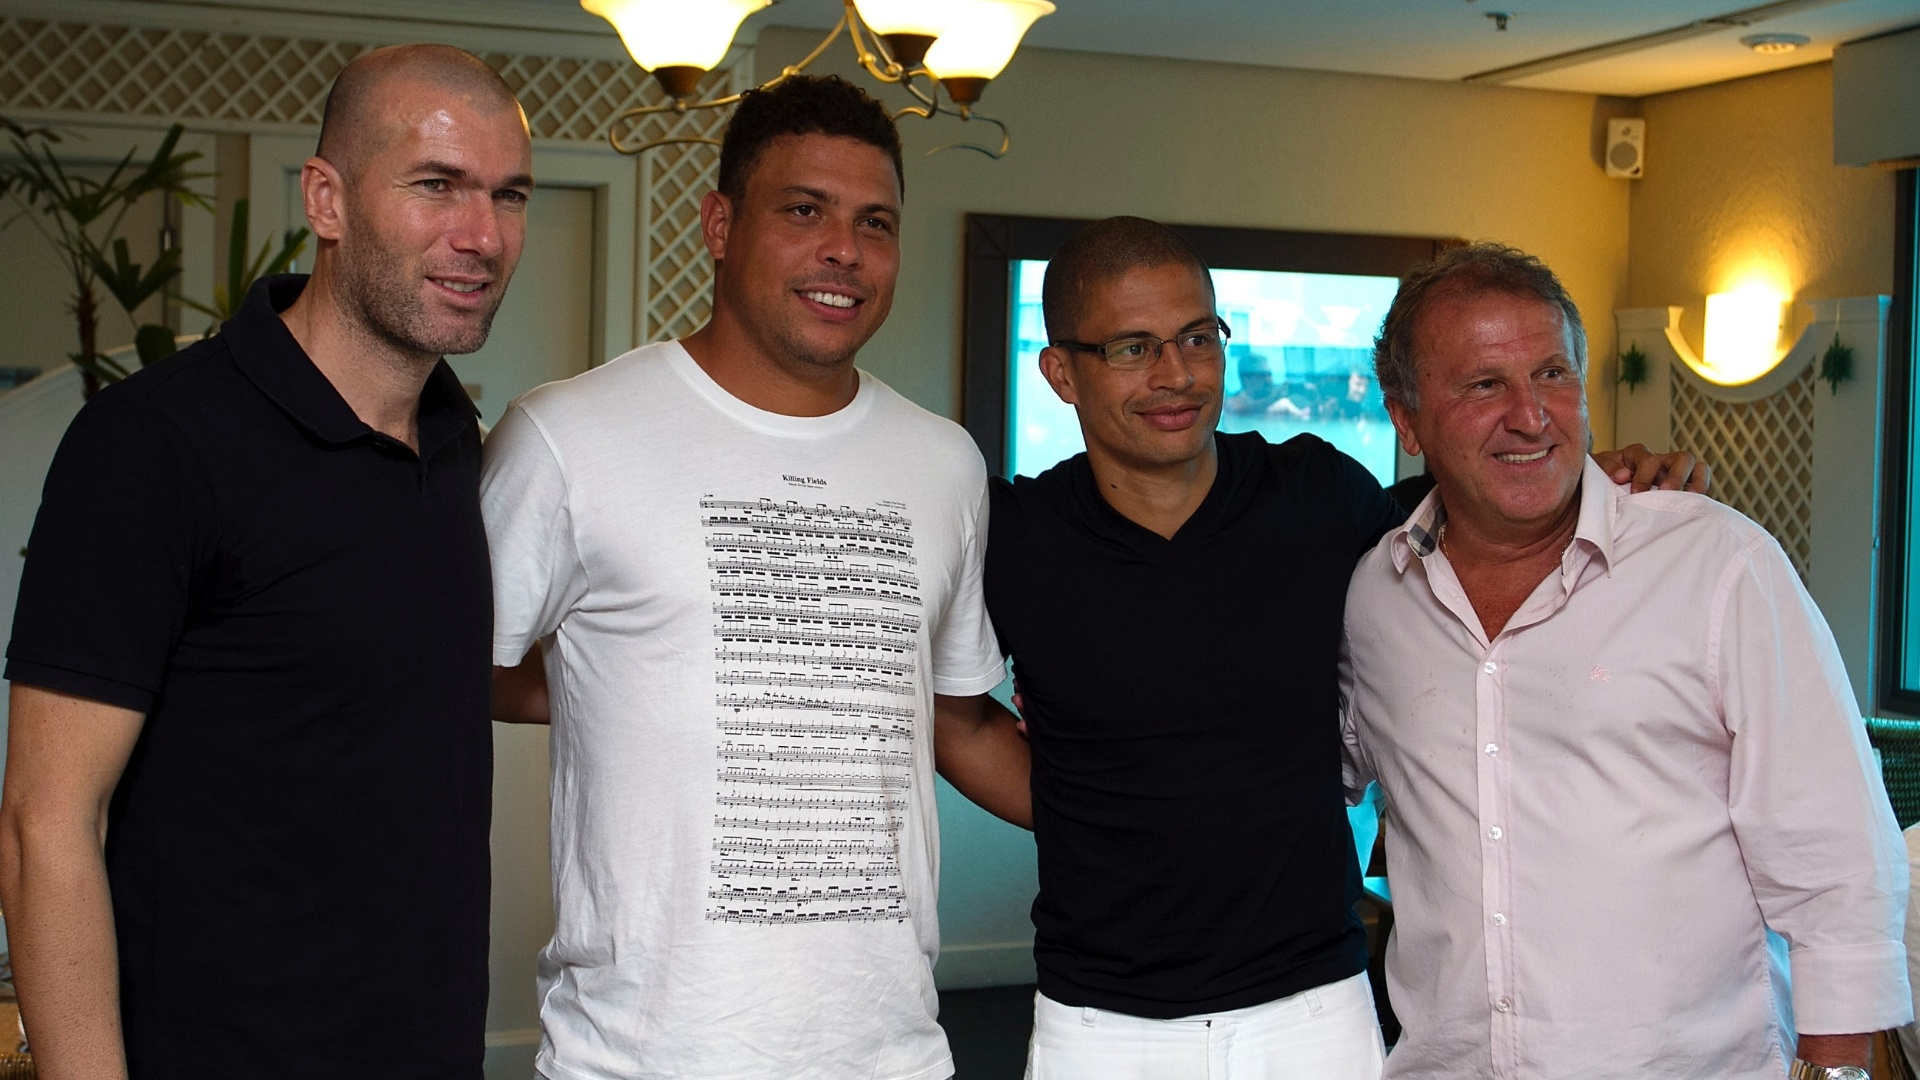 19.dez.2012 - Na ordem, Zidane, Ronaldo, Alex e Zico posam para foto em evento de divulgao do Jogo Contra a Pobreza, que ser realizado em Porto Alegre, na Arena Grmio